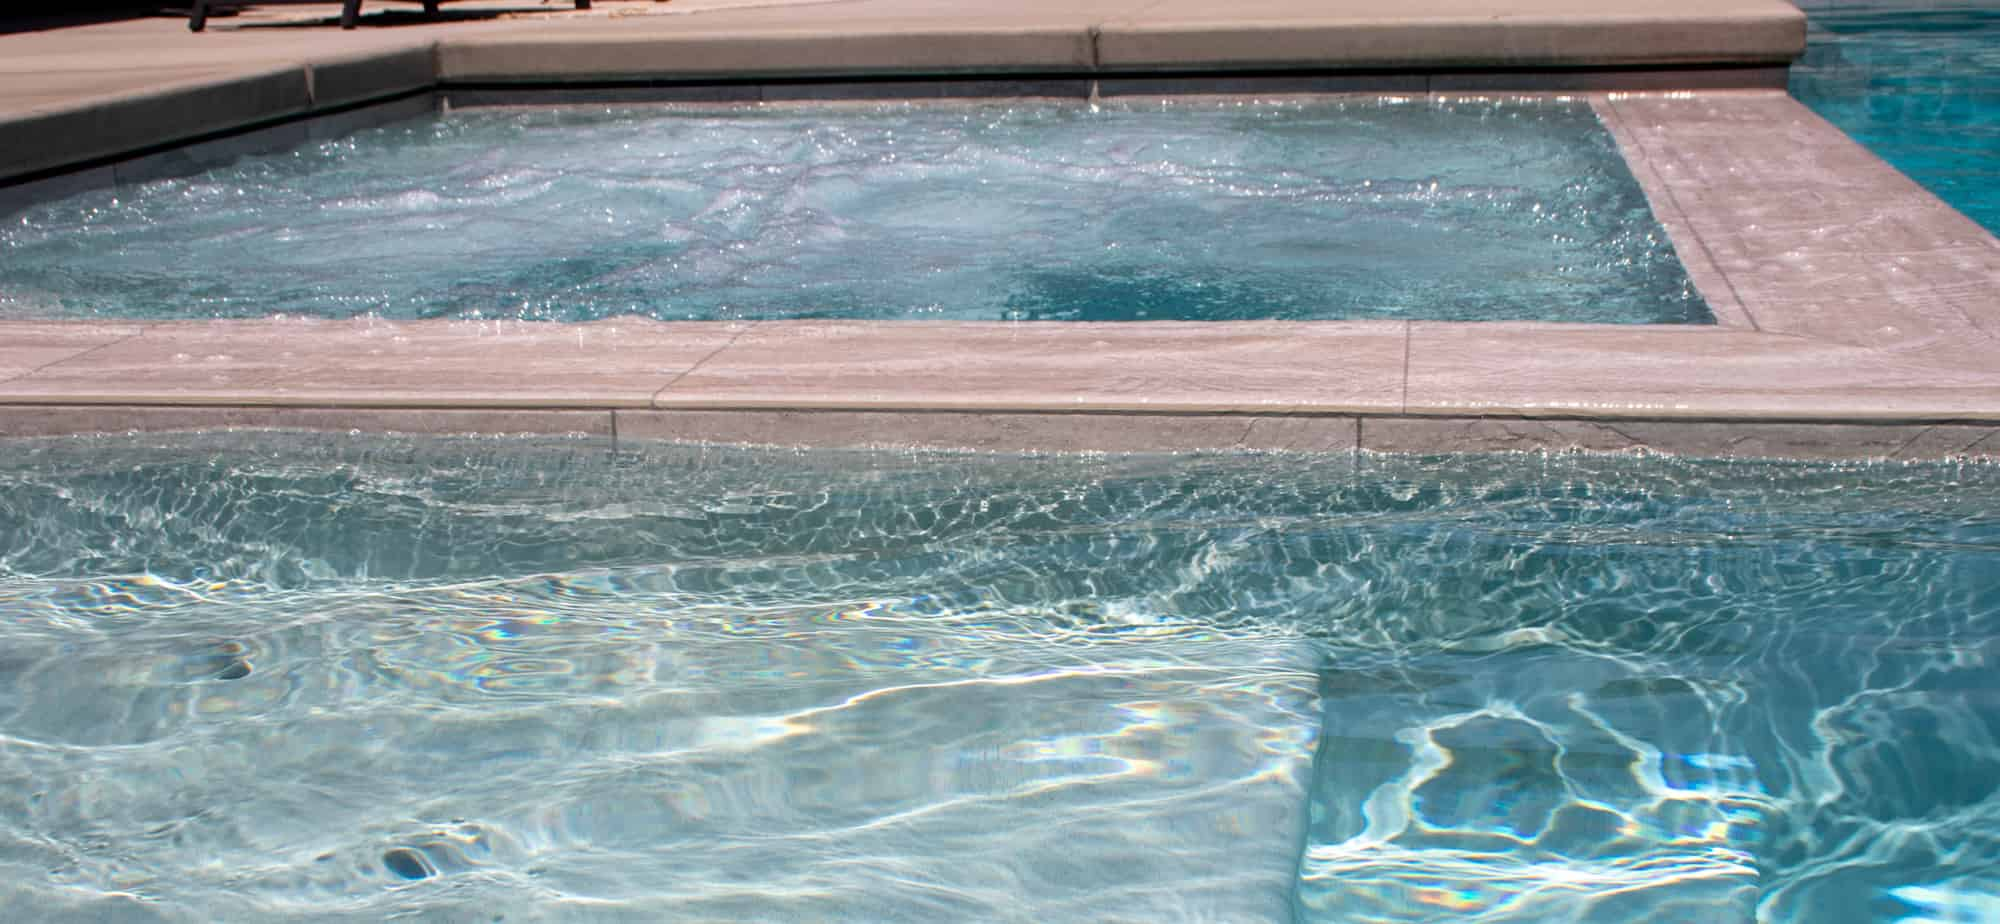 Infinity edge spa with jets on and gray waterline tile